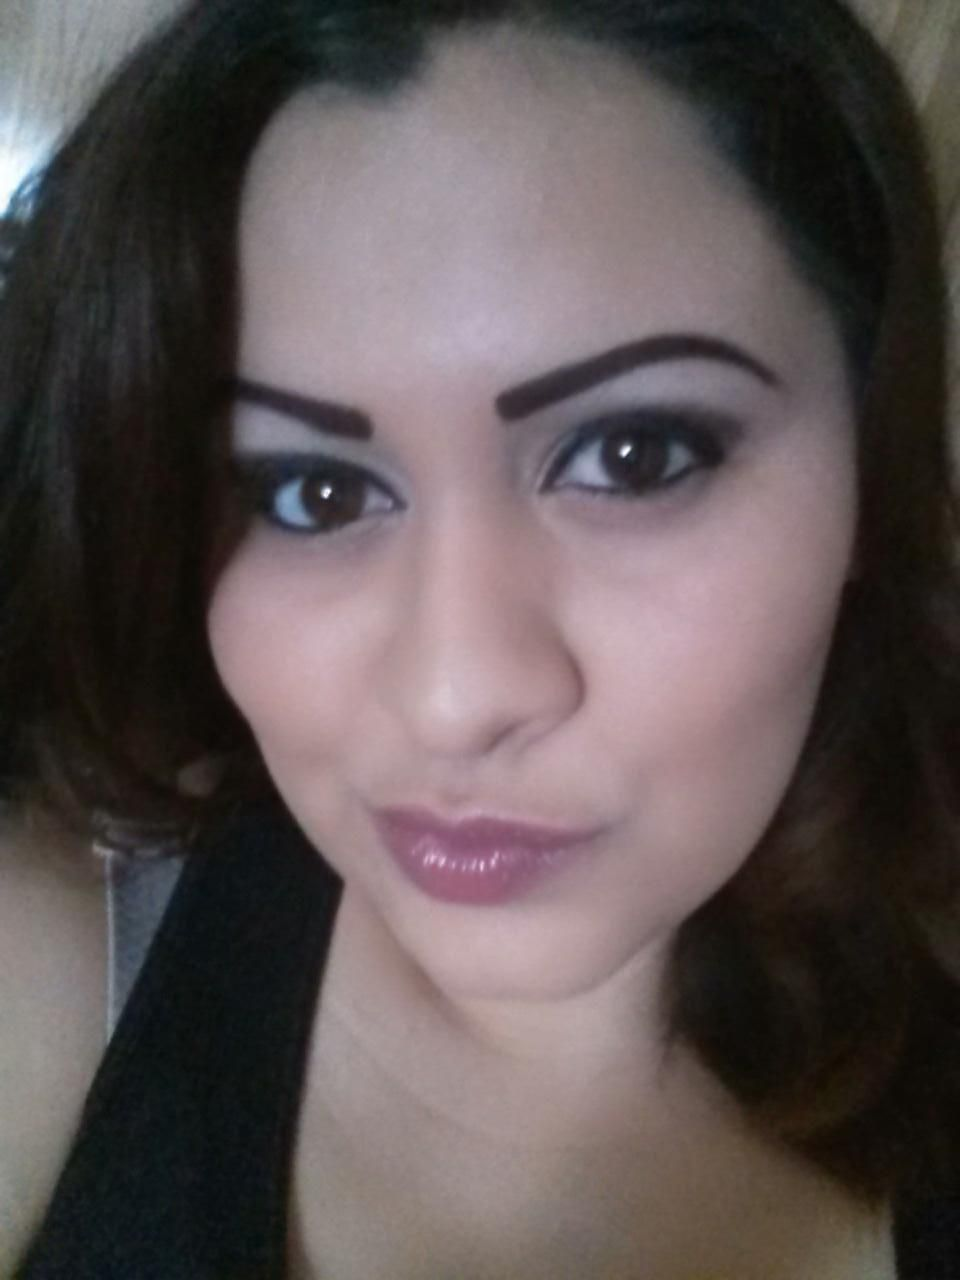 hispanic singles in wenden Meet latino singles in salome, arizona online & connect in the chat rooms dhu is a 100% free dating site to meet latino men in salome.